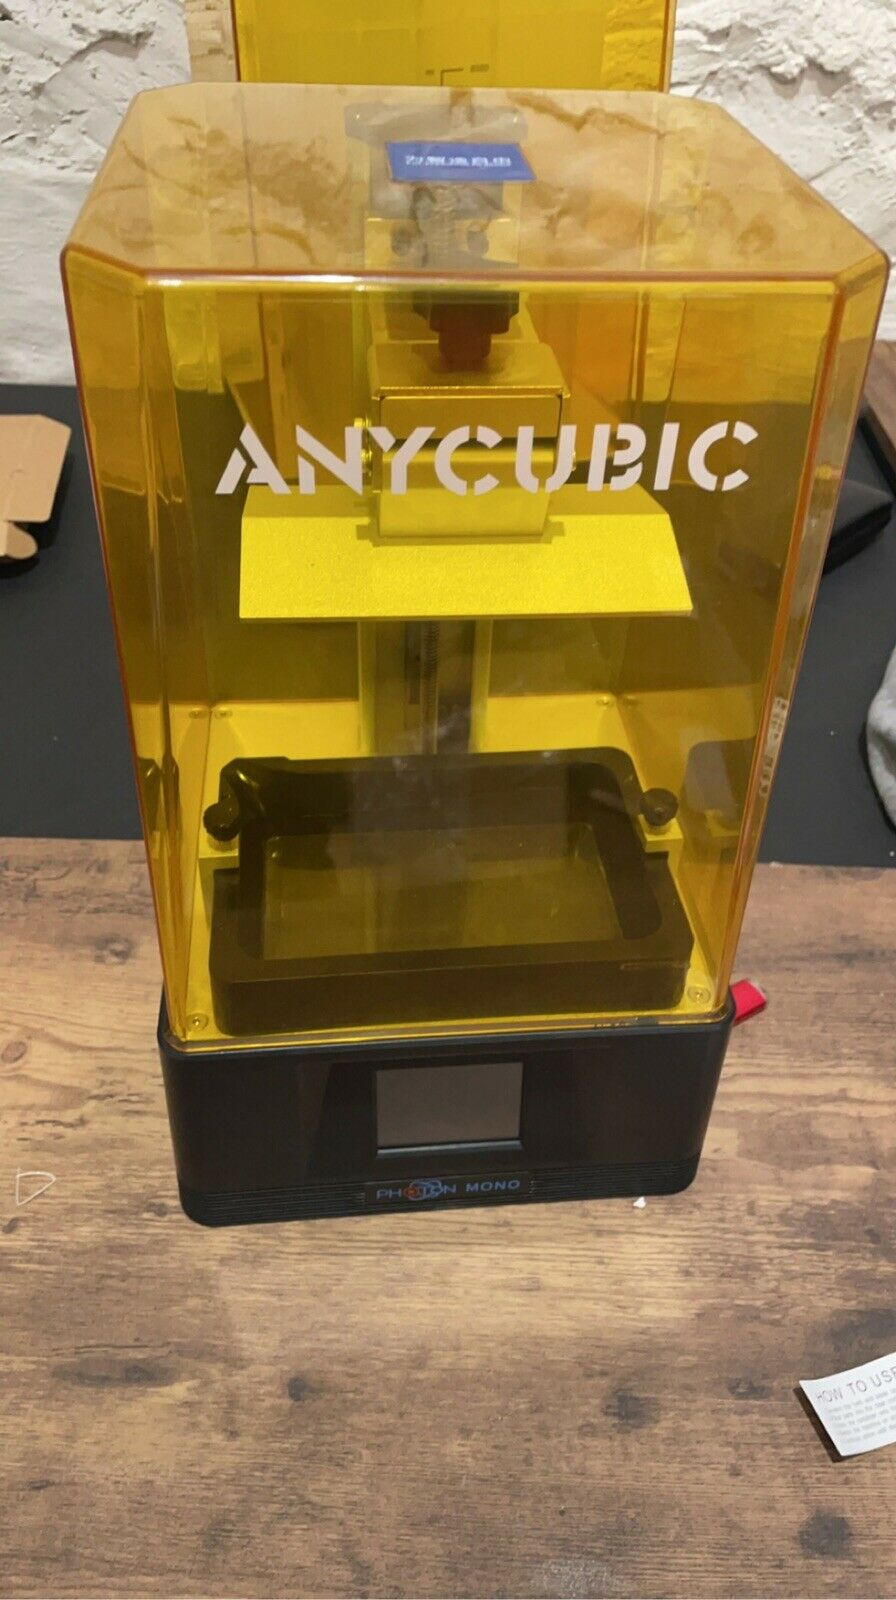 anycubic photon mono / anycubic wash and Cure plus / 3 anycubic resin